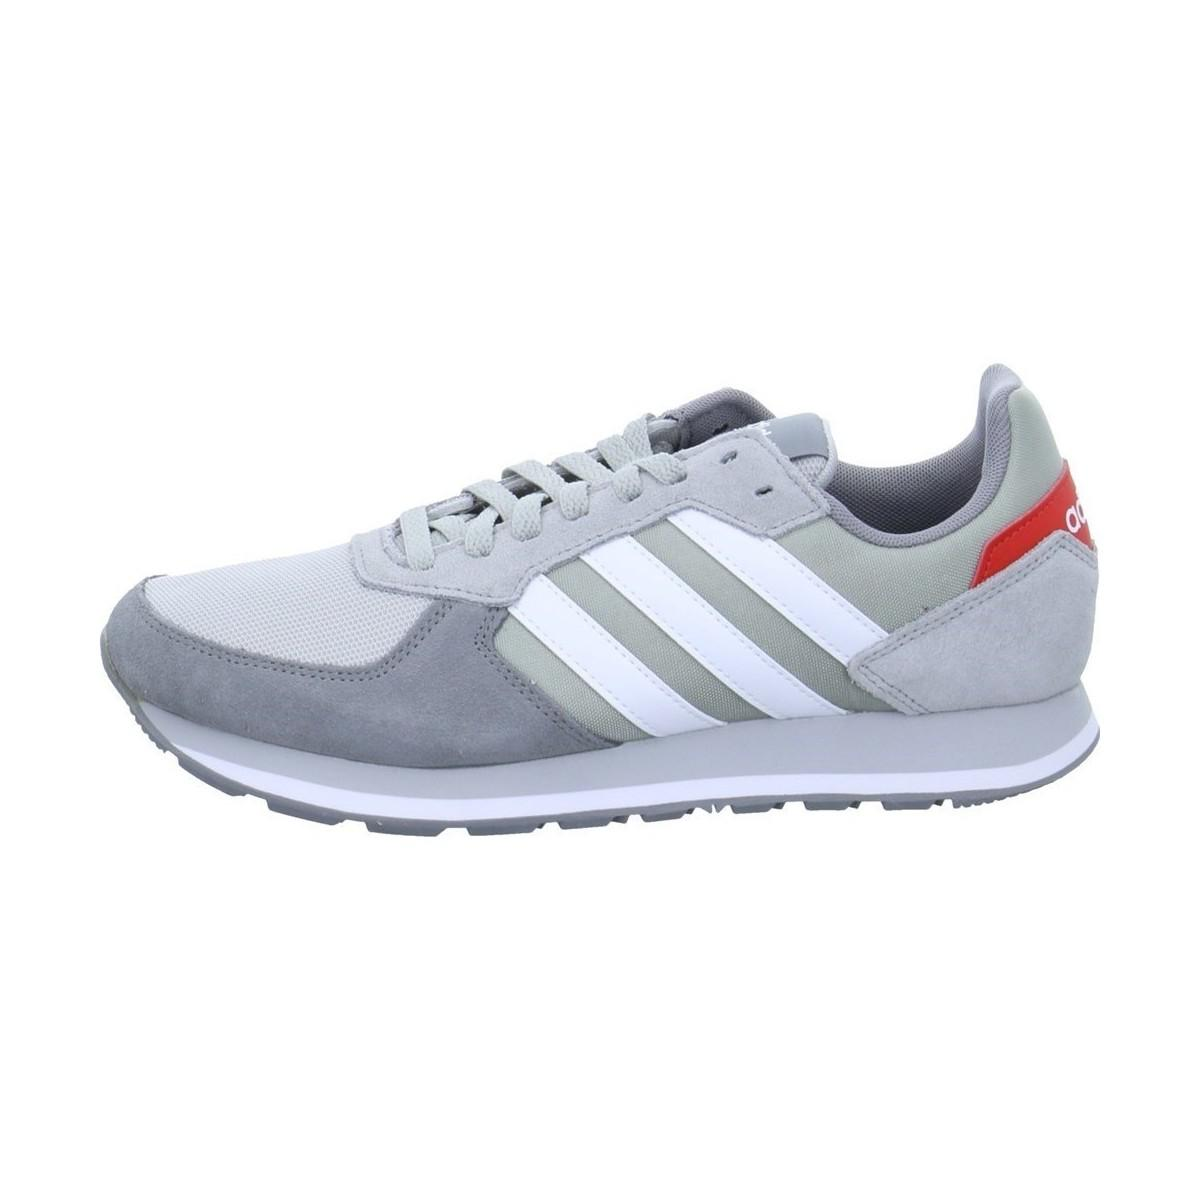 the latest 70b6f 02264 adidas. 8K hommes Chaussures en Gris